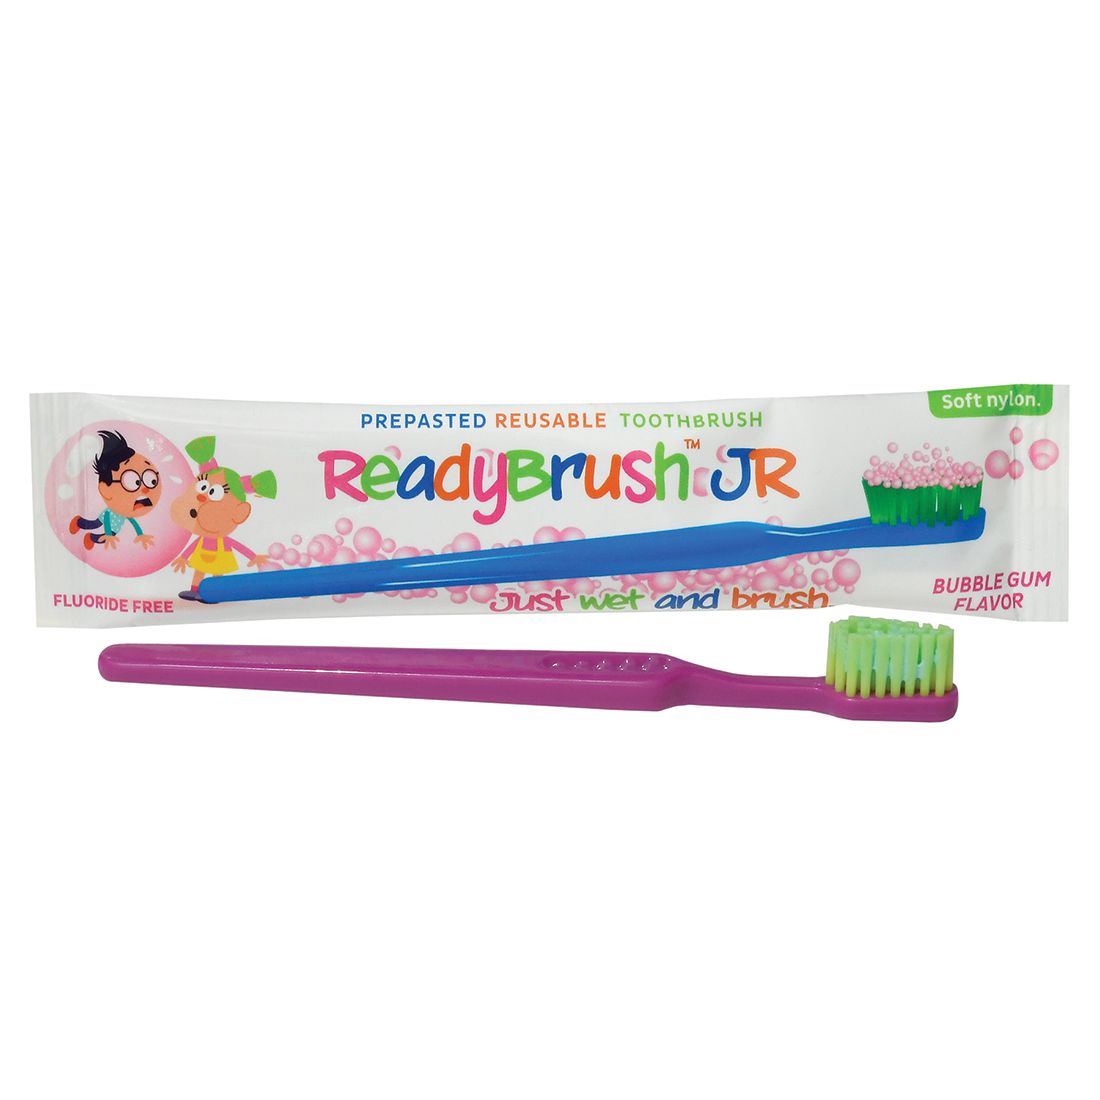 Pre-Pasted Toothbrushes